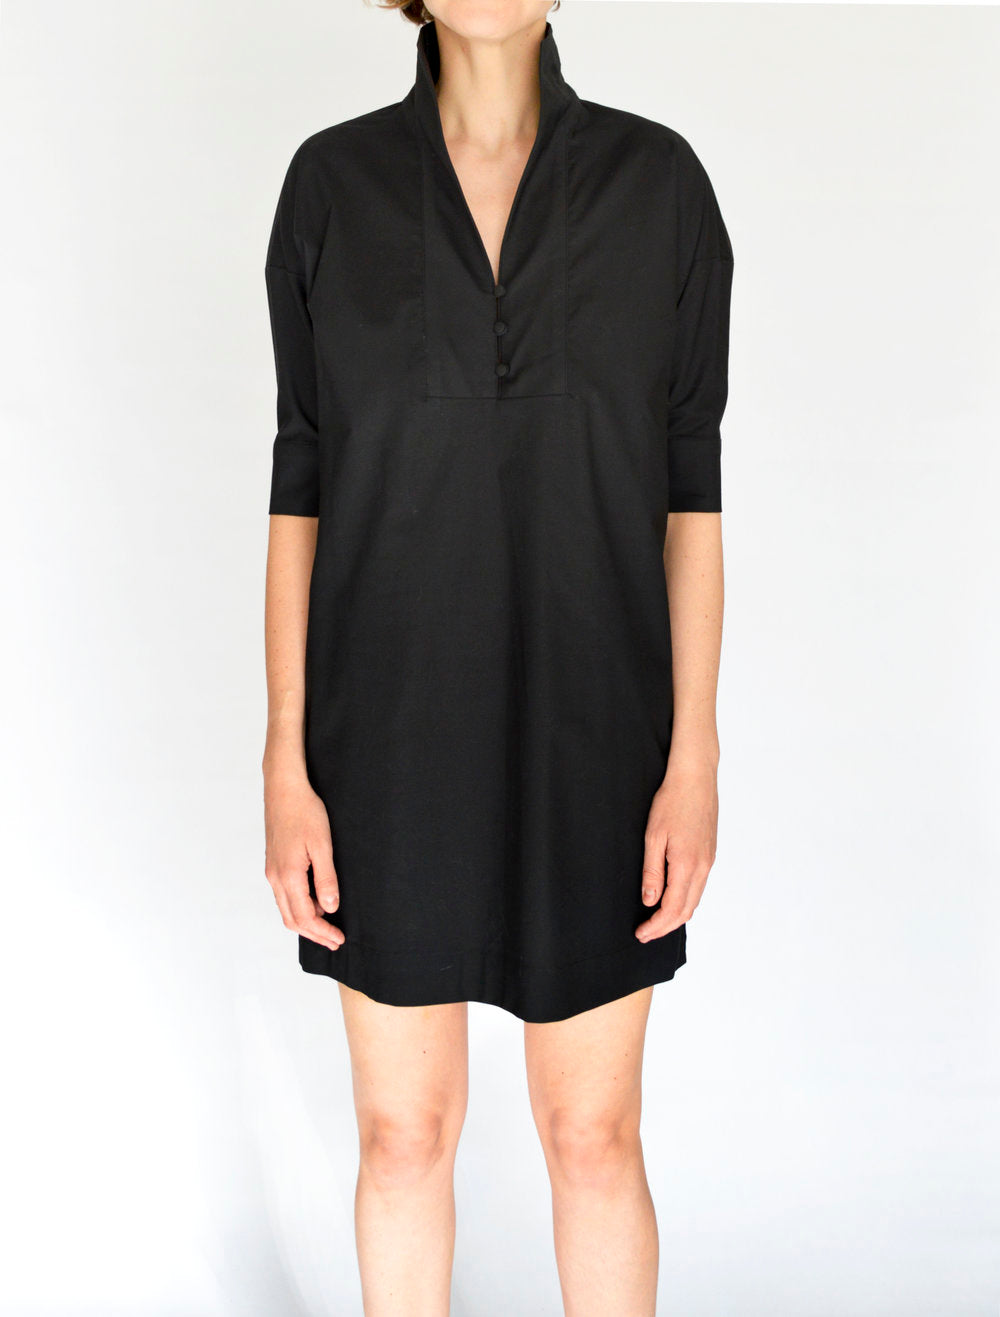 Kallmeyer Mockneck Dress in Black